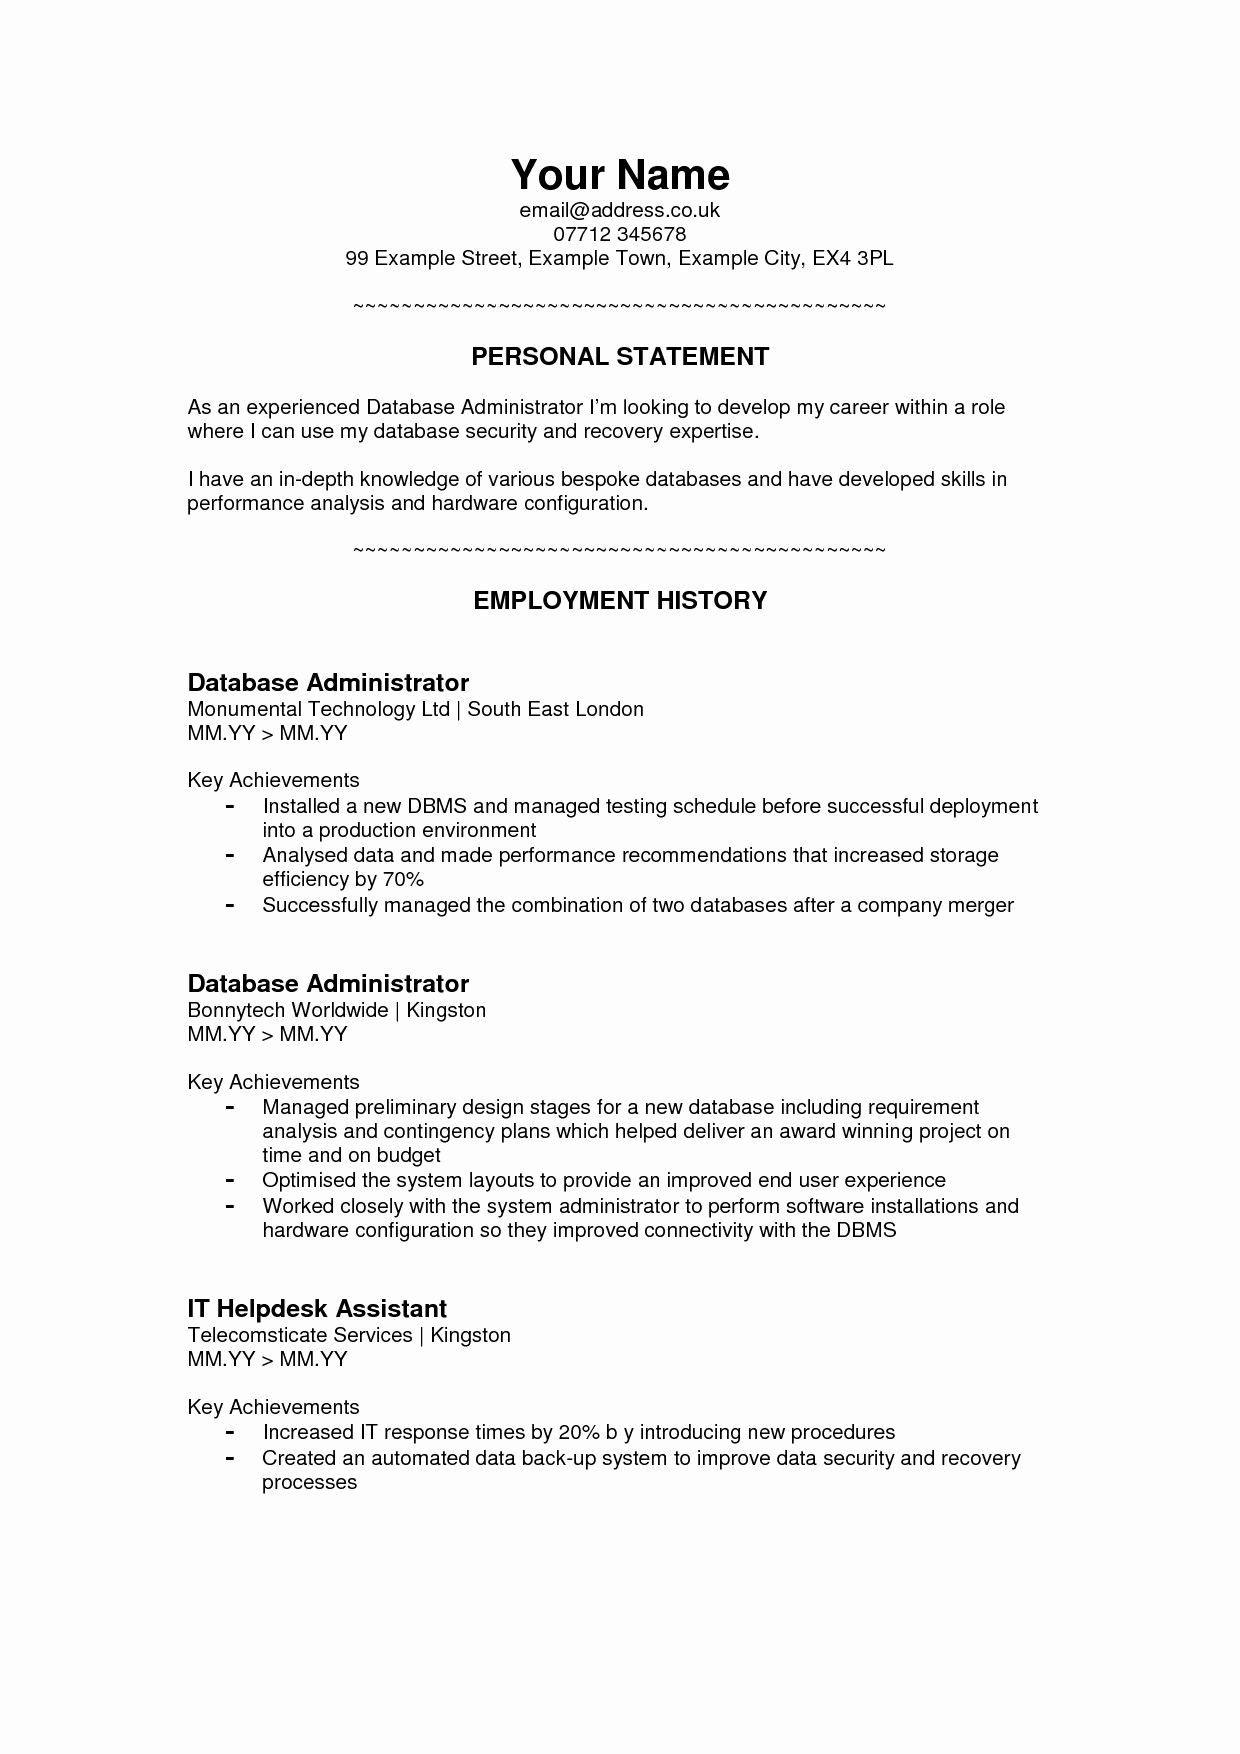 Performance Resume Templates - Examples Resume Summary Statements Inspirational Grapher Resume